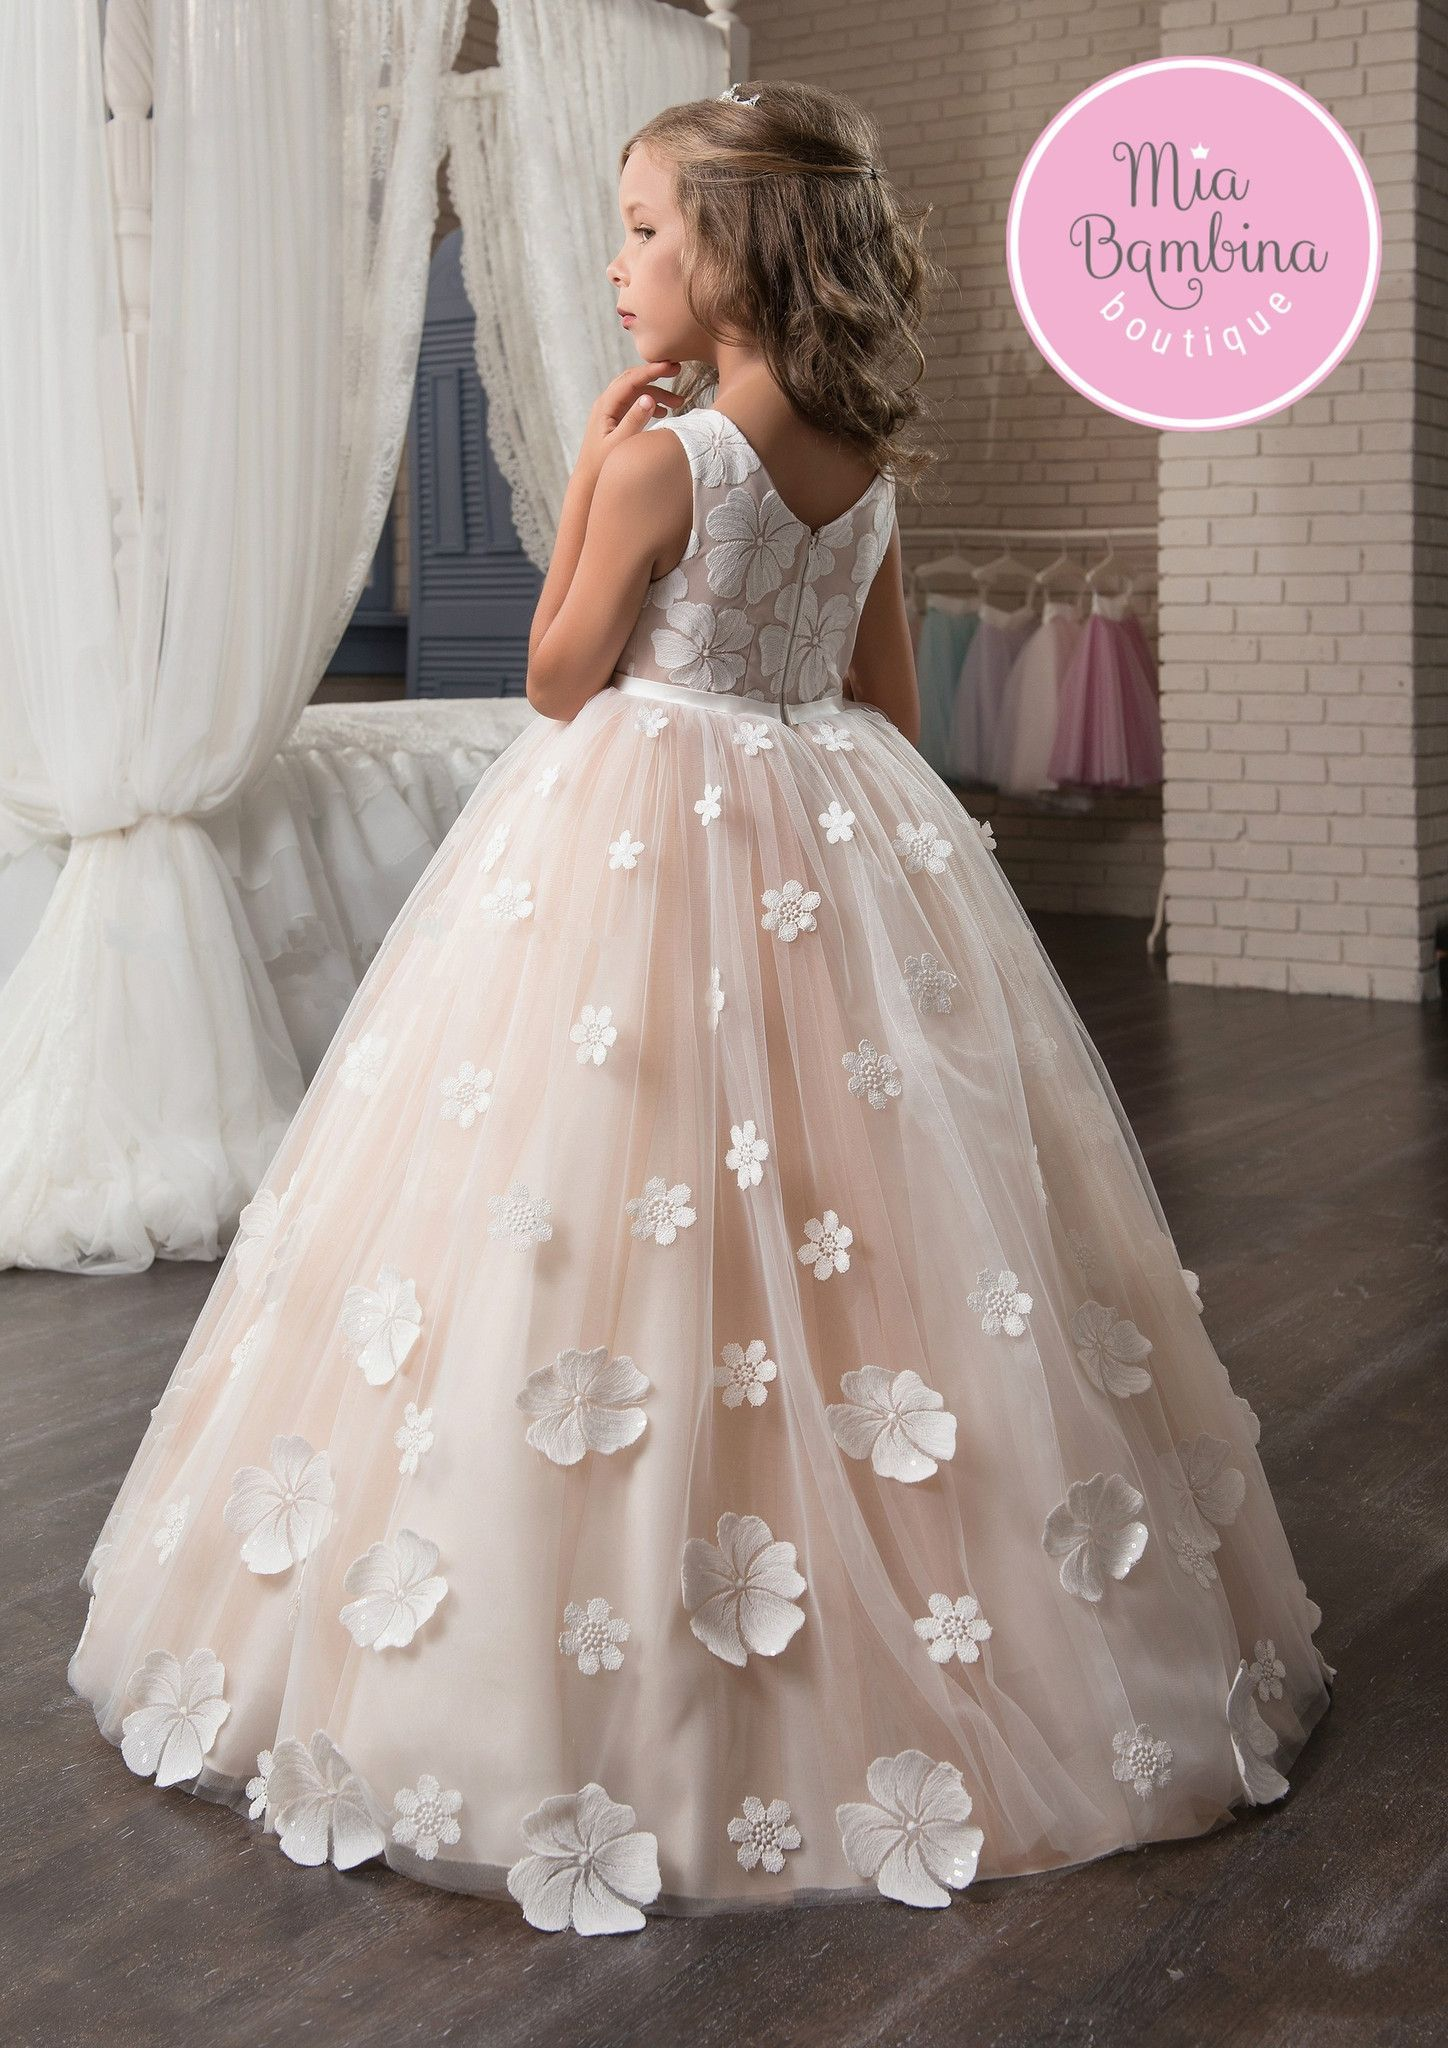 Oakland wedding pinterest dresses junior bridesmaid dresses the oakland junior bridesmaid dress is a sleeveless a line silhouette flower girl dress embellished with beaded floral appliques izmirmasajfo